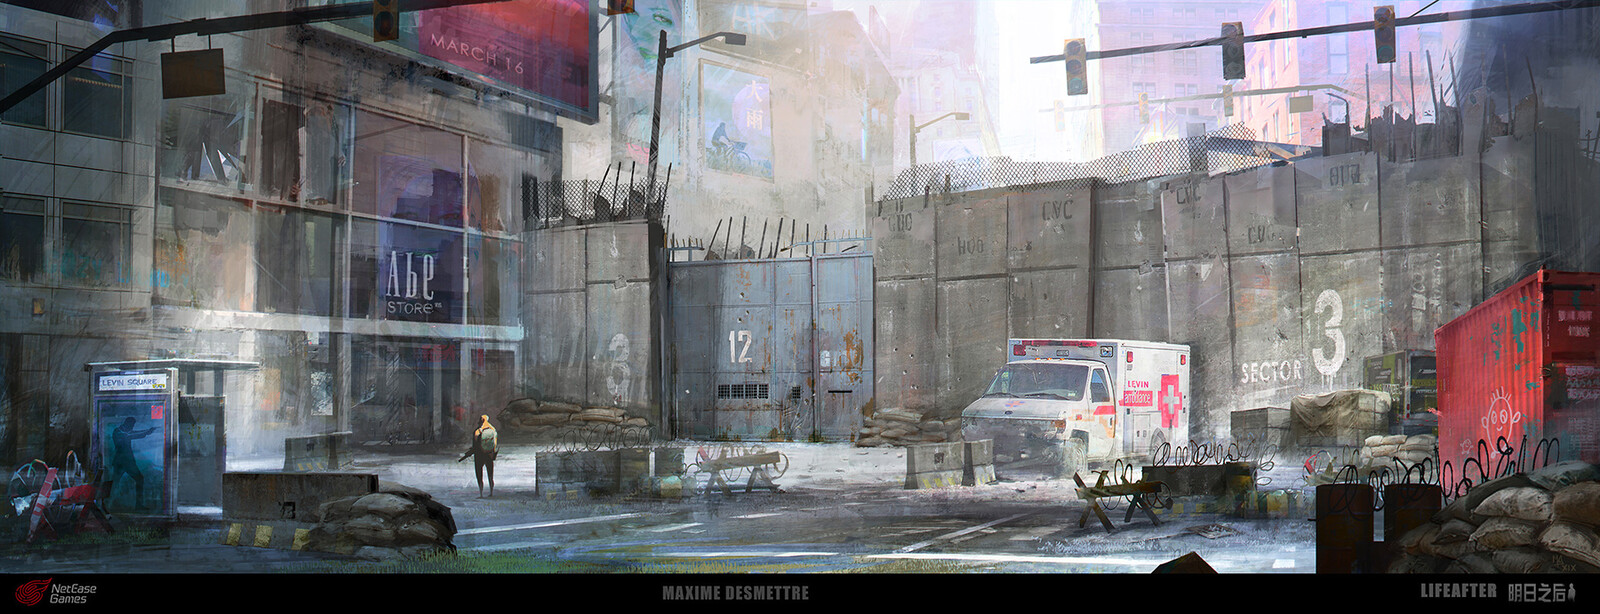 Life After - Security Gate Concept Art (2019)